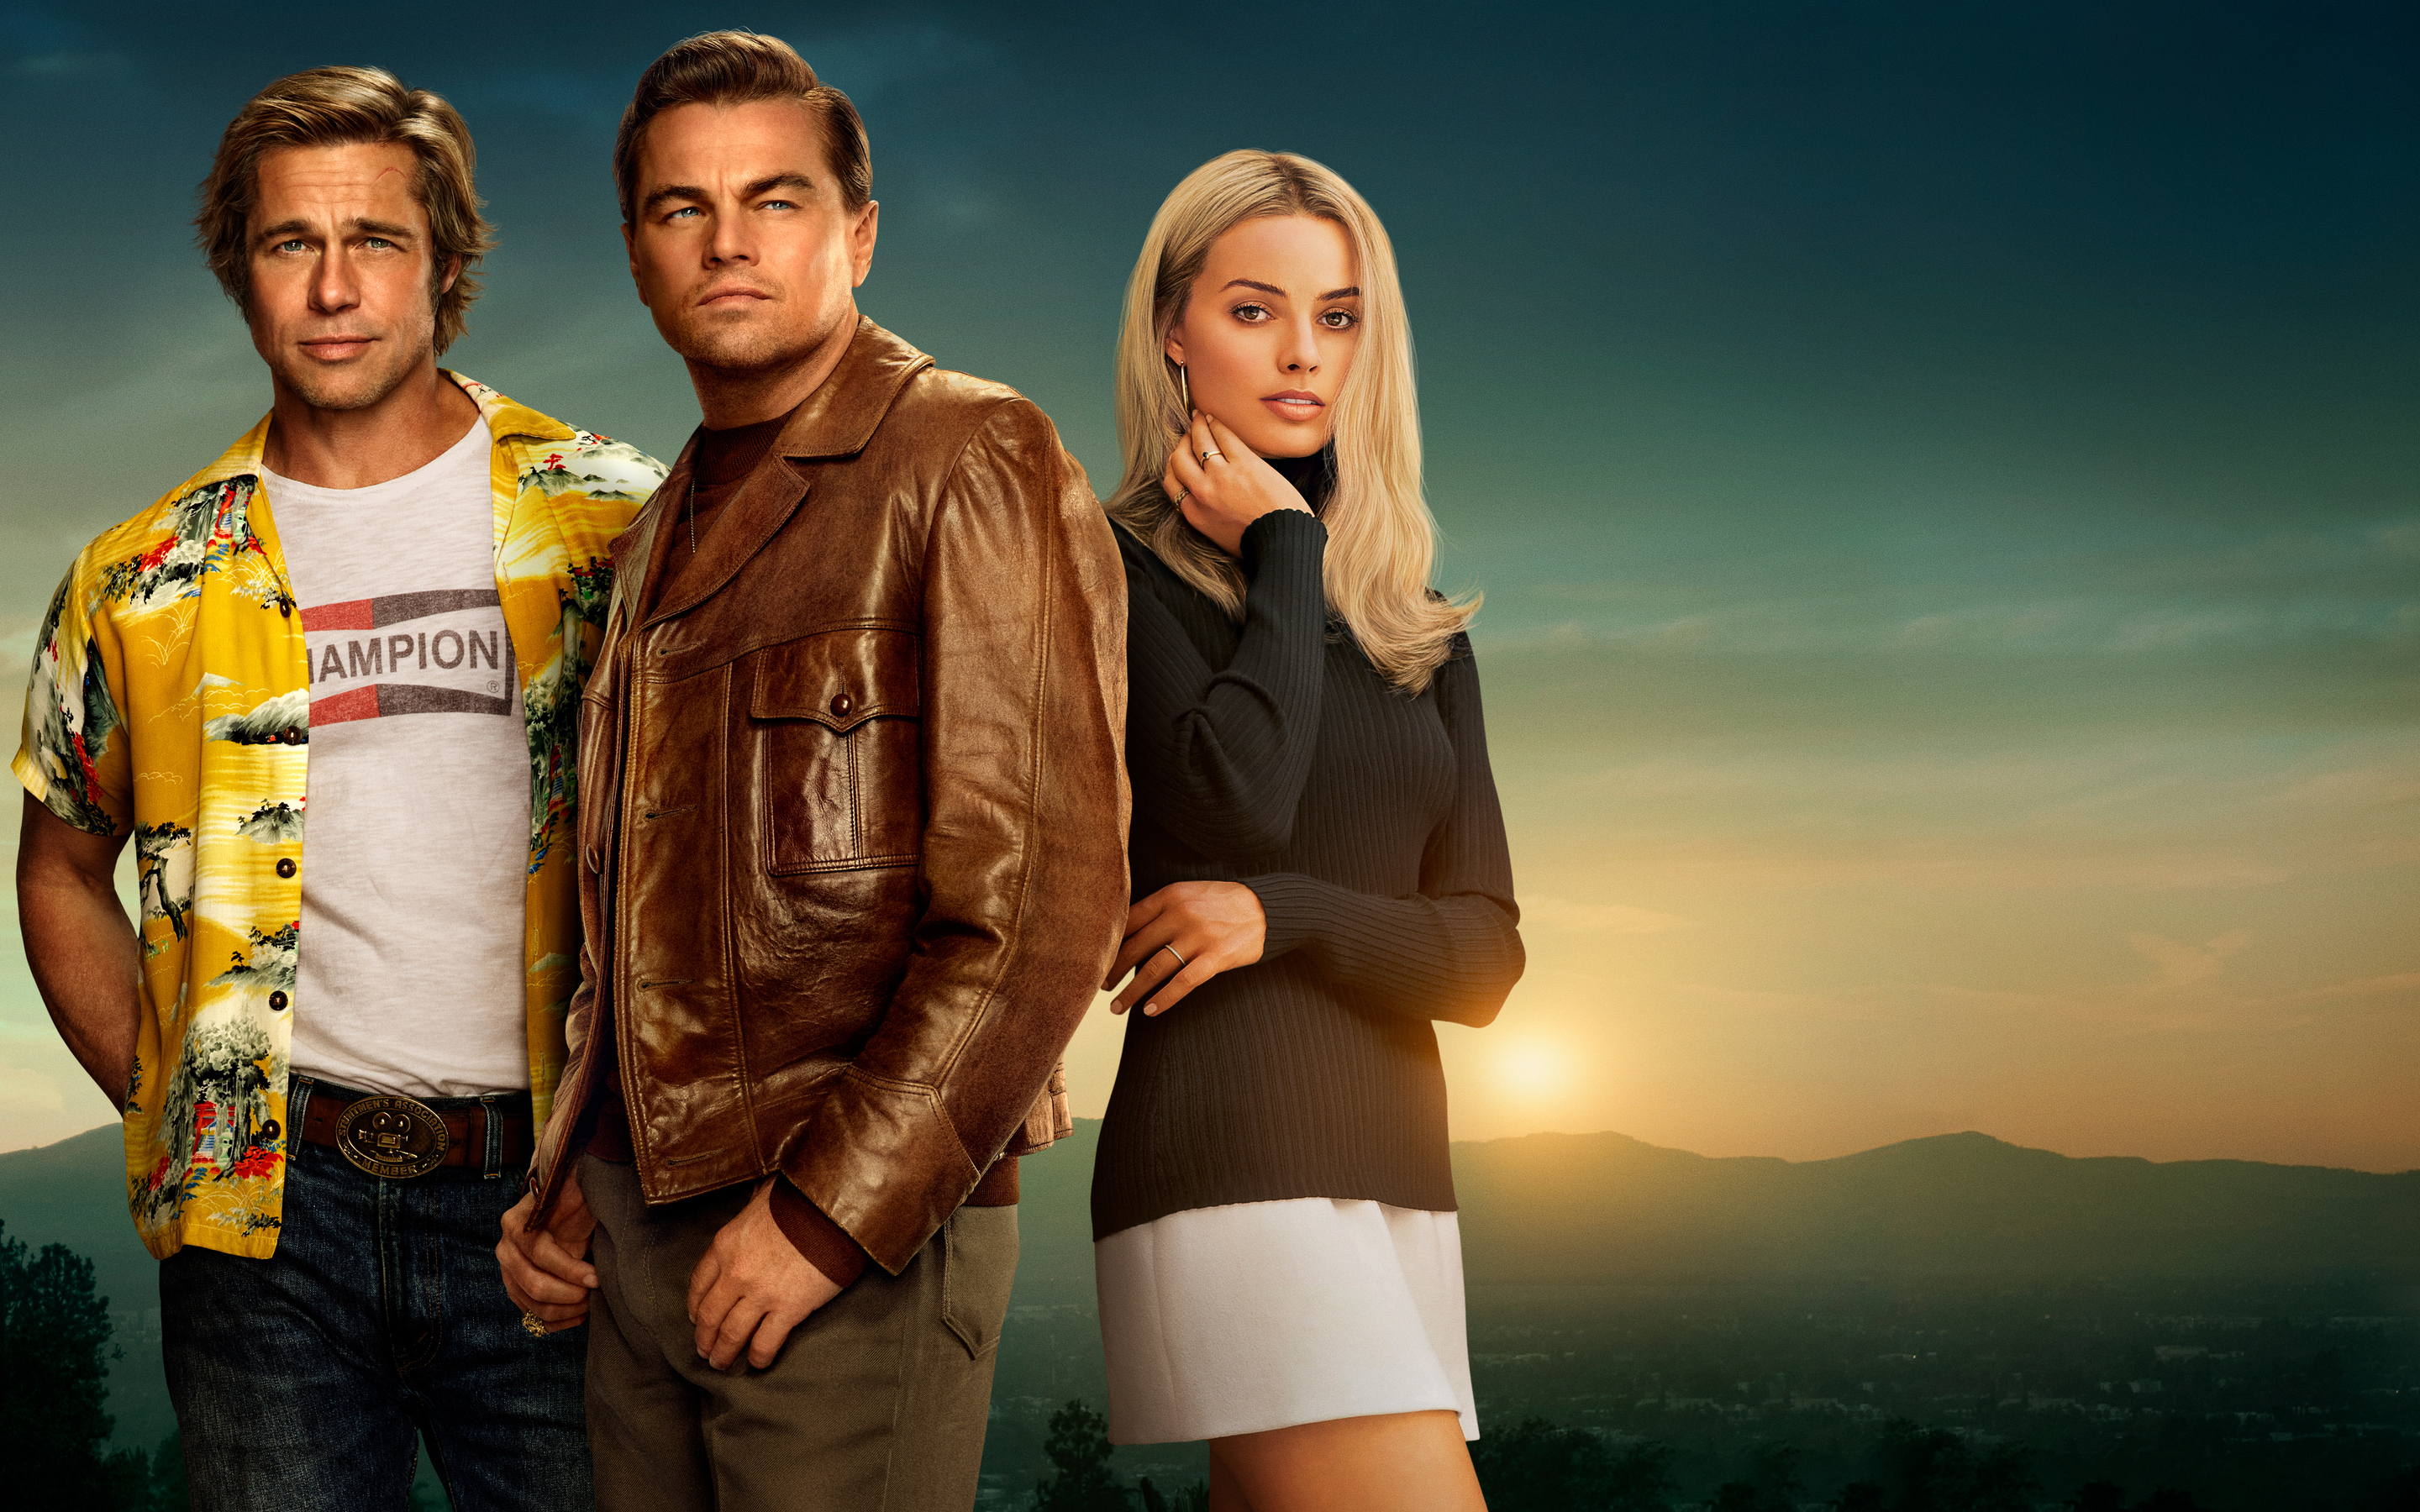 2880x1800 Once Upon A Time In Hollywood 8k 2019 Macbook Pro Retina